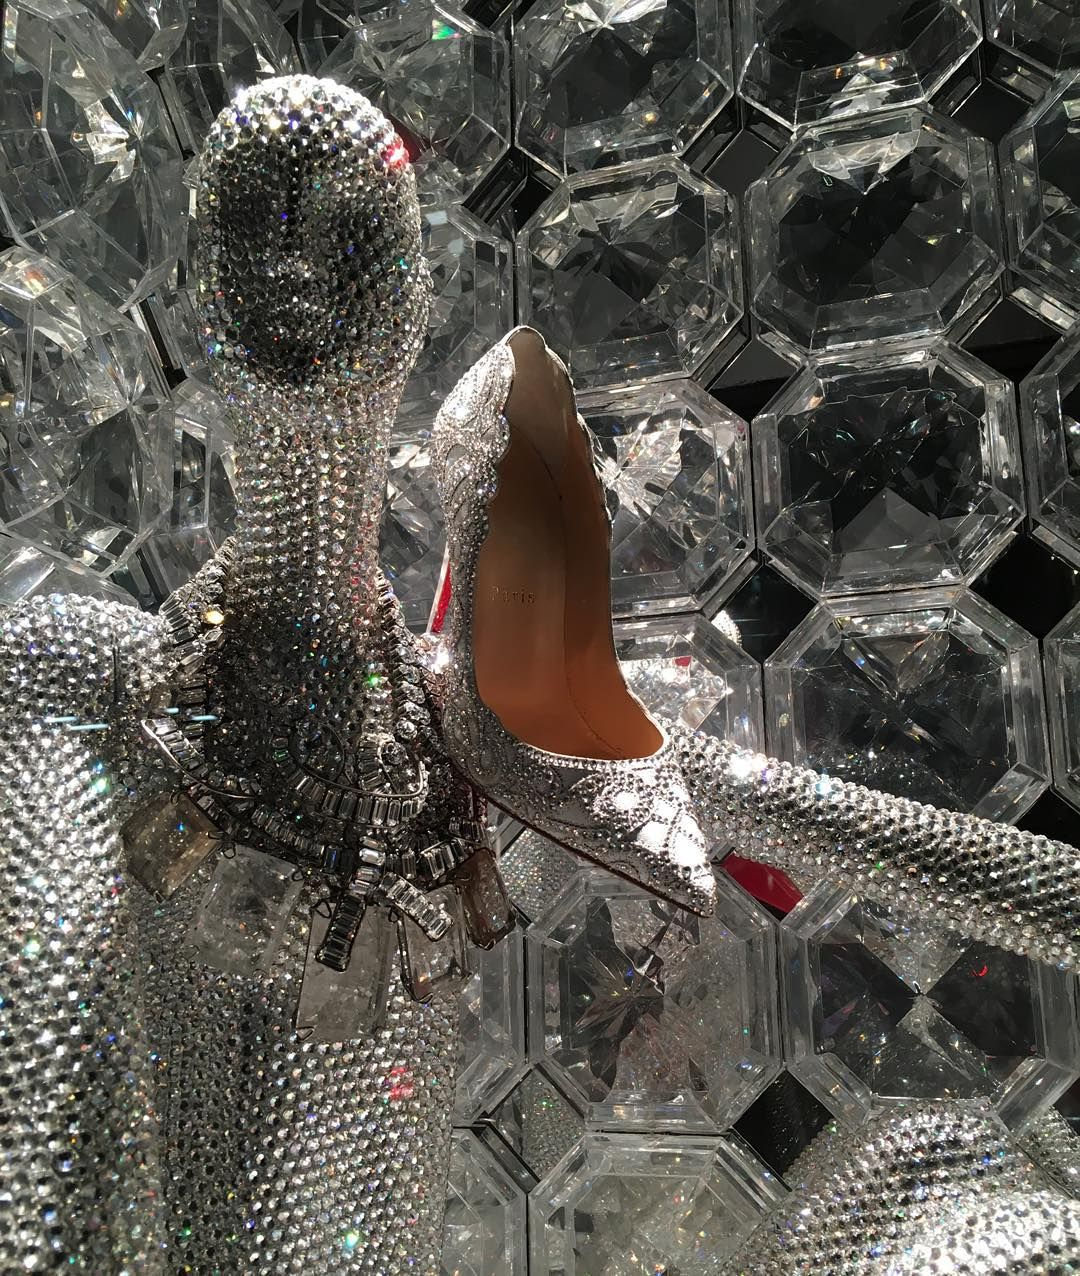 Maniqui Escaparate Bergdorf Goodman New York Quotclose Up Mannequin Louboutin